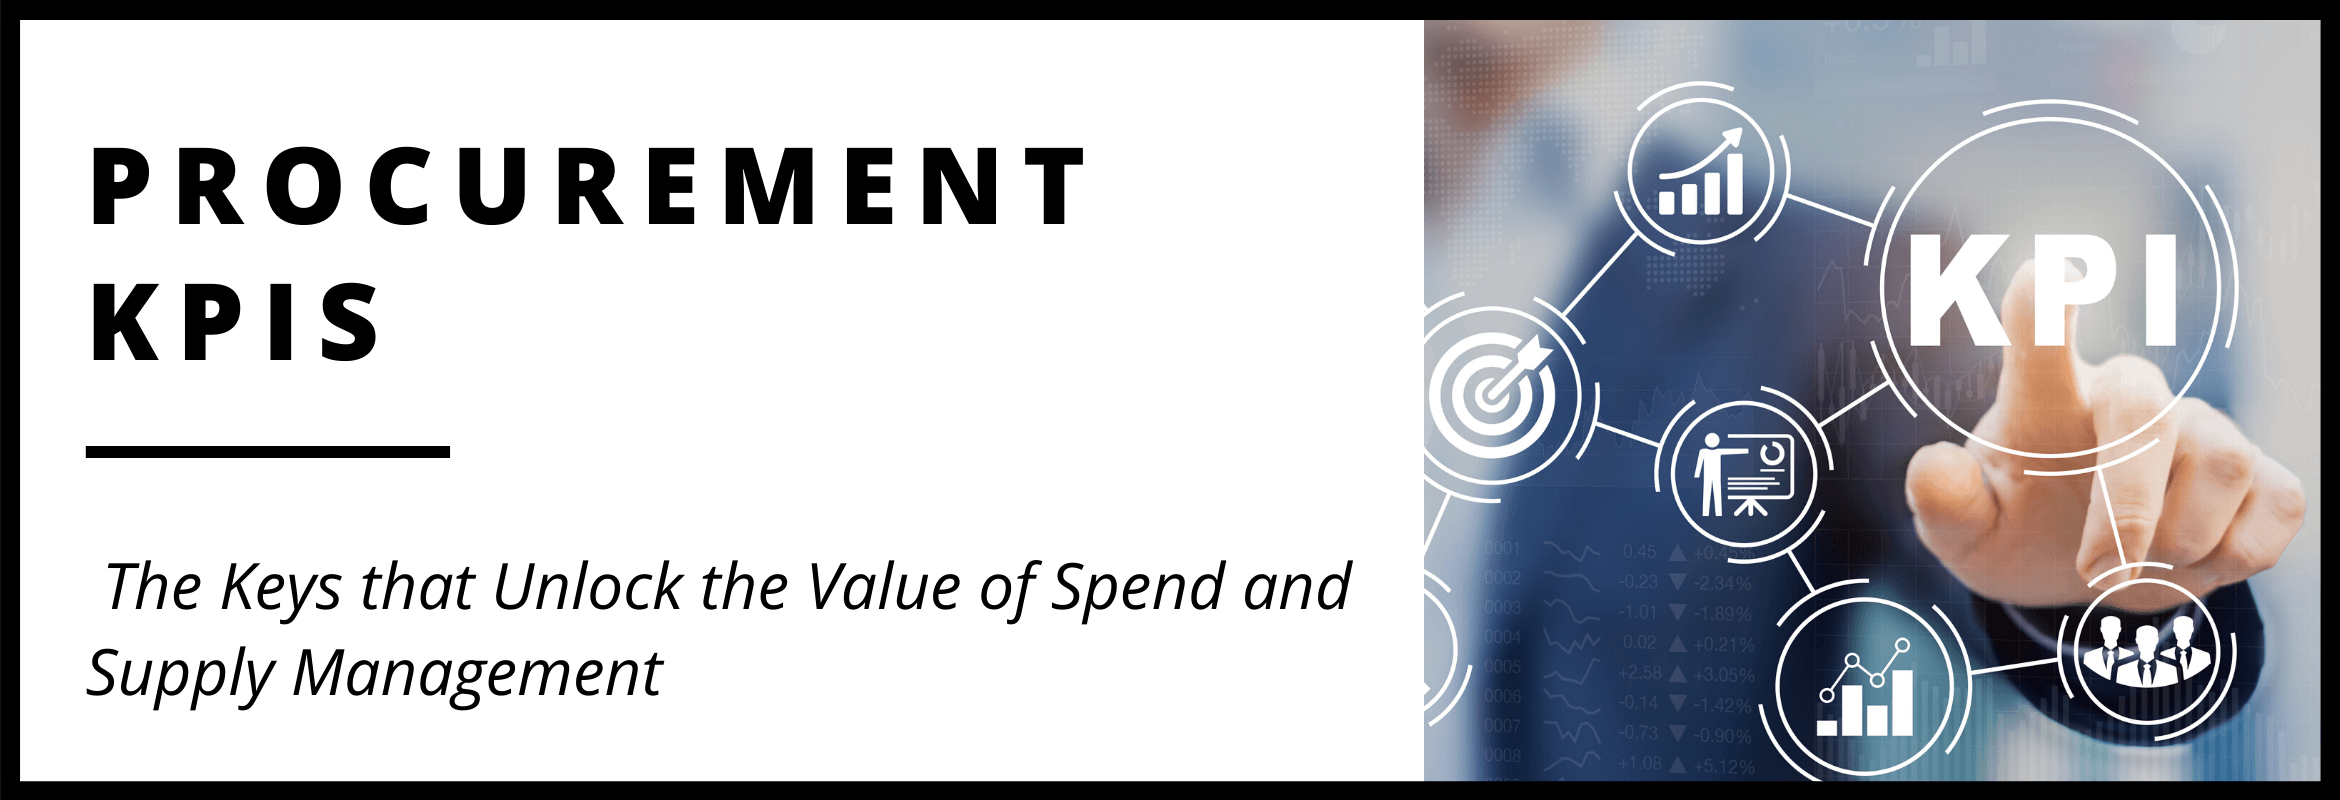 Procurement KPIs and Spend Management